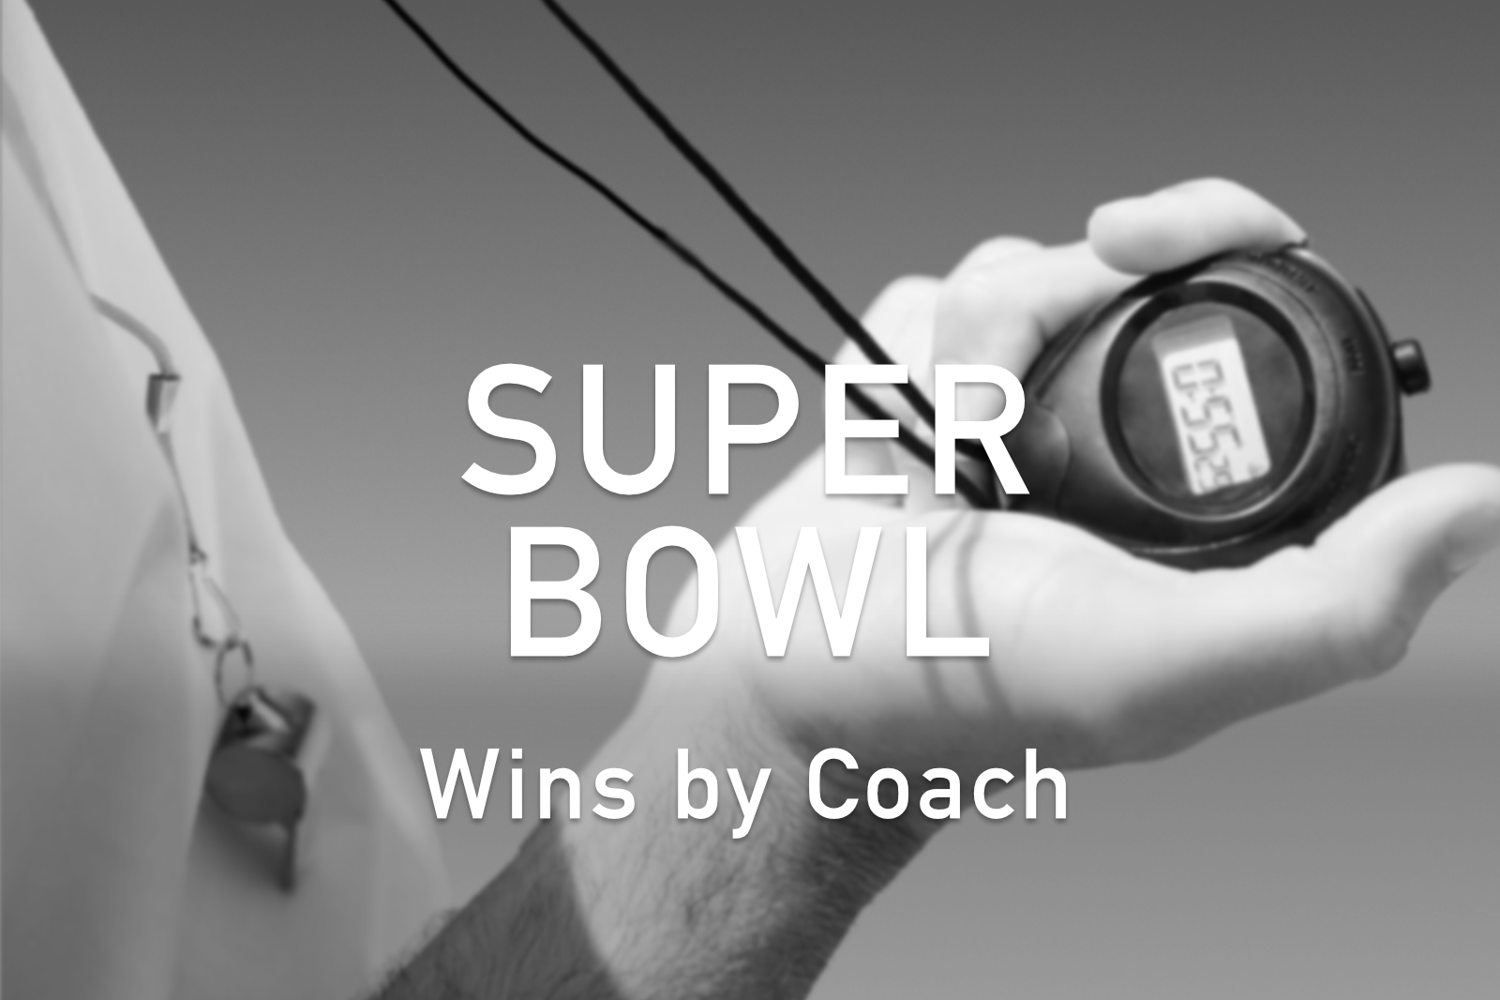 Most Super Bowl Wins by Coach